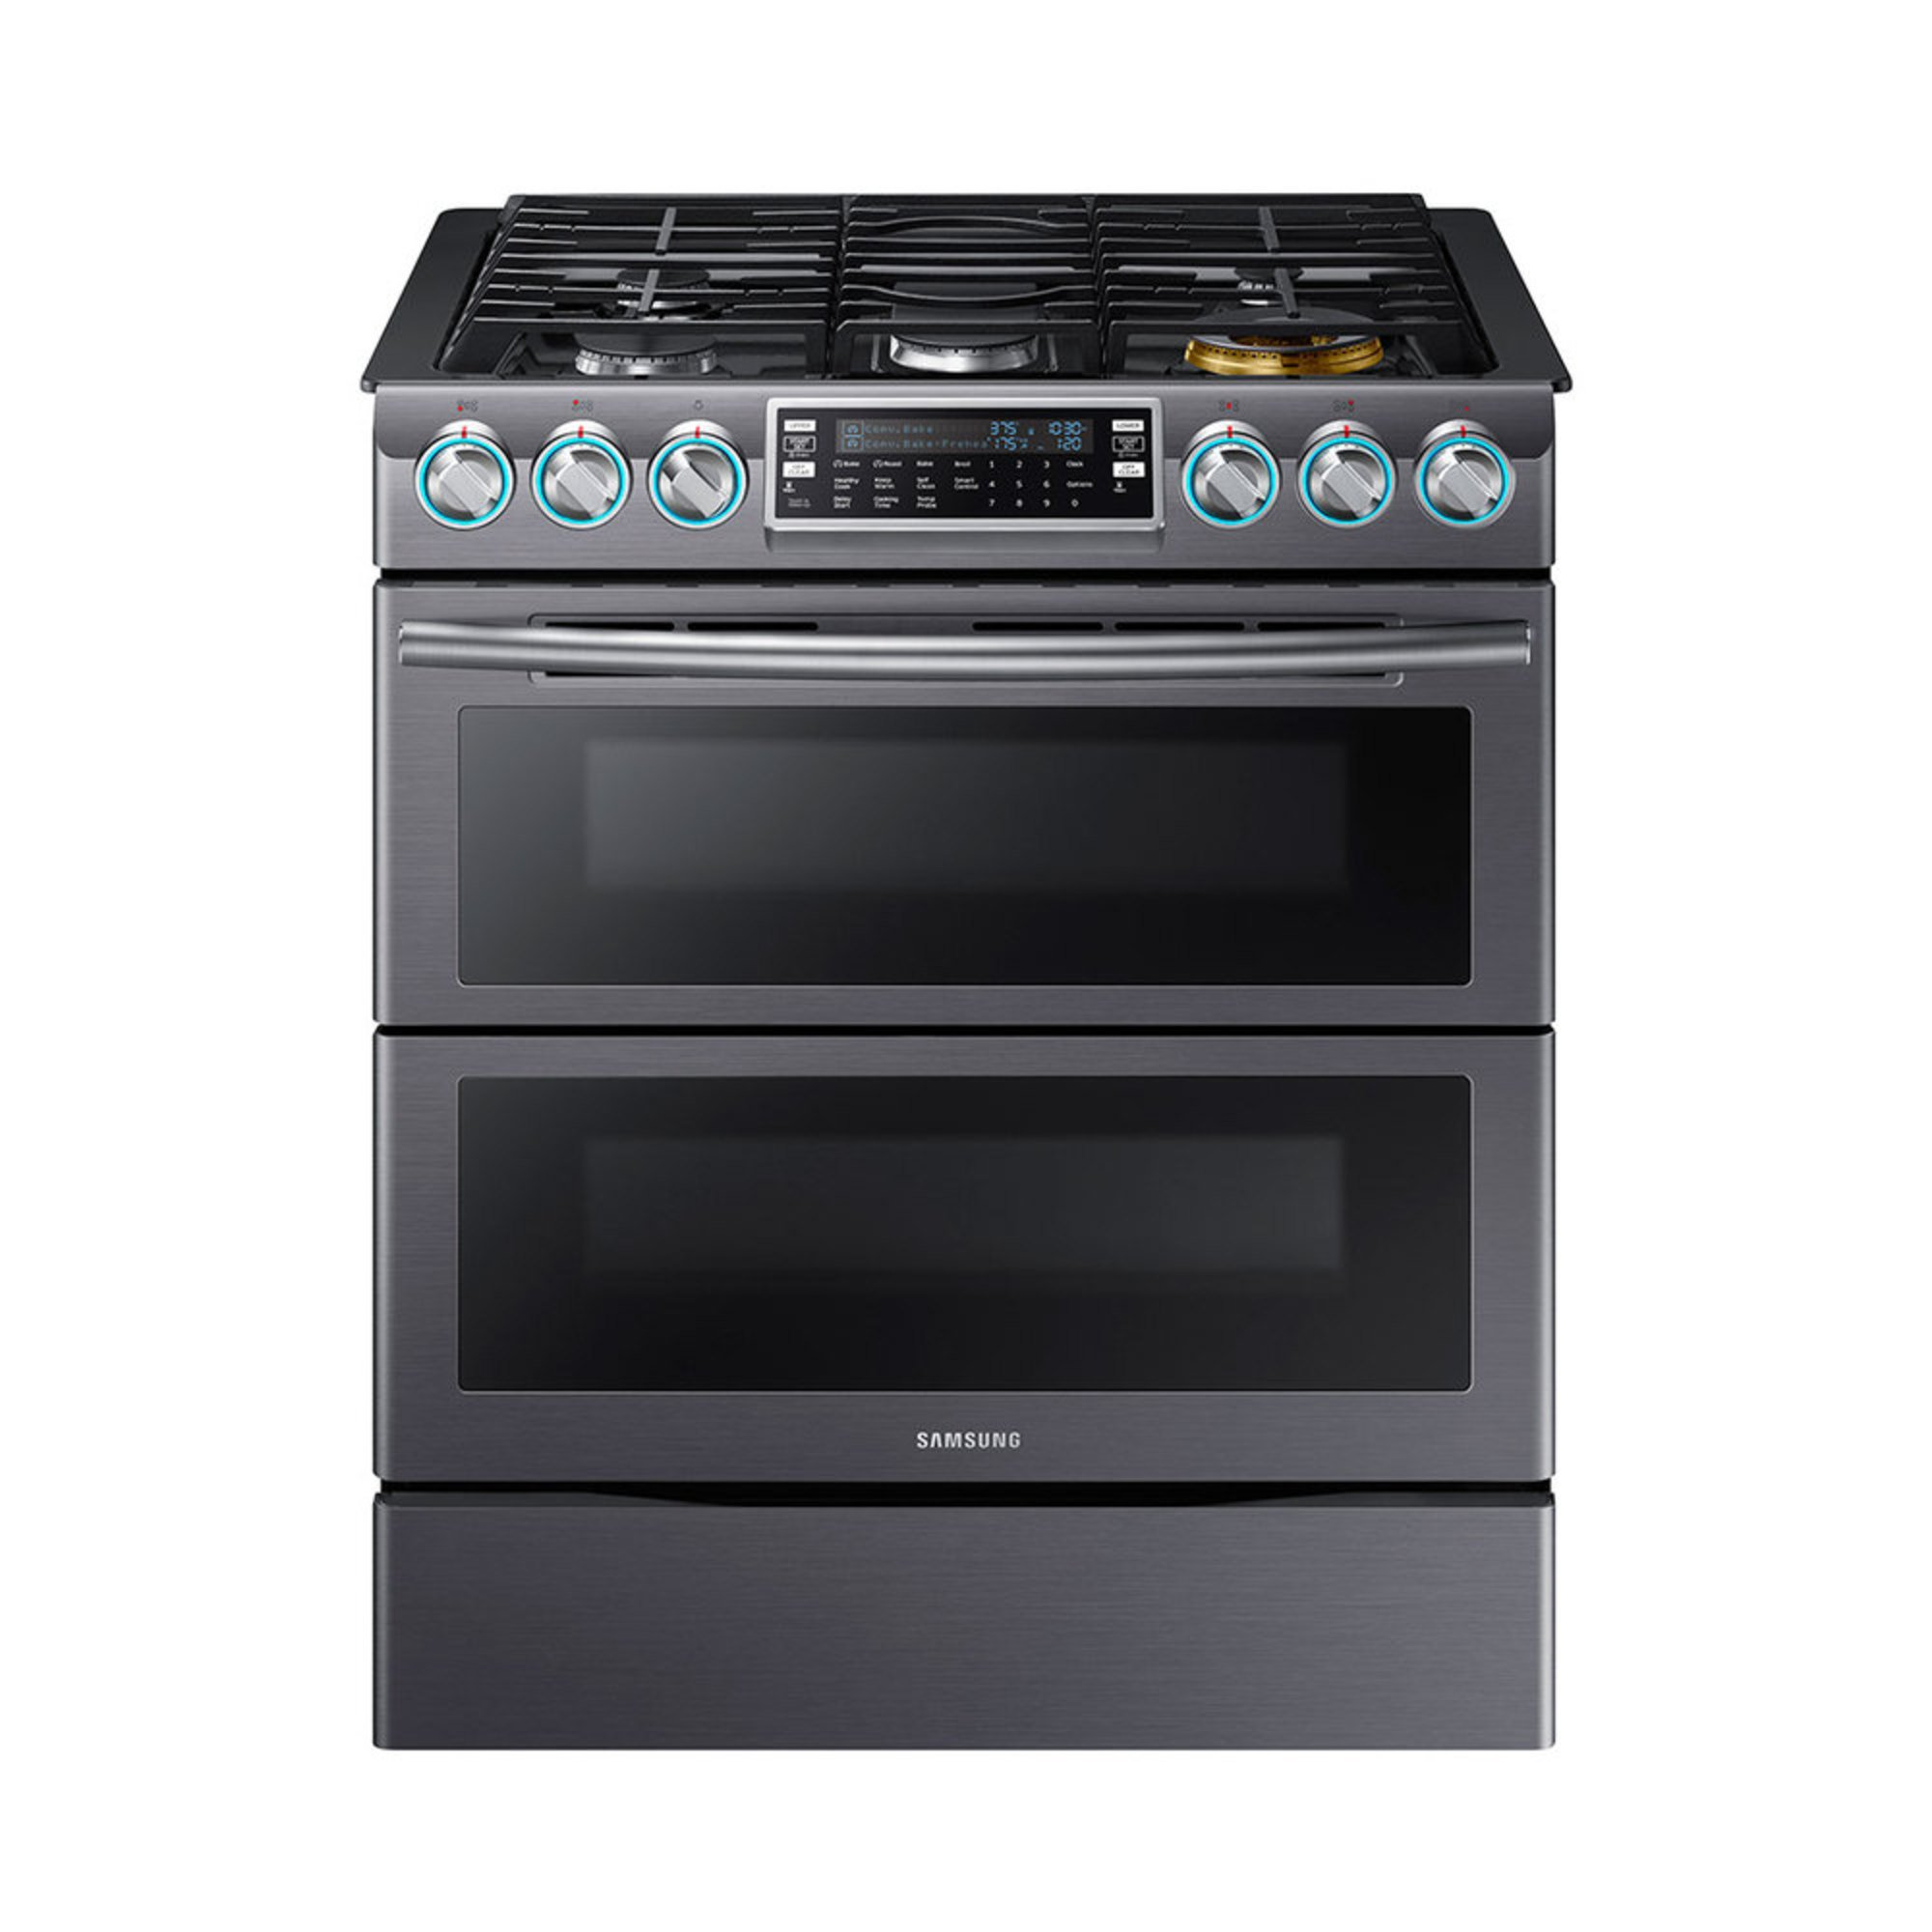 Samsung 5 8 slide in double oven gas range black stainless steel nx58k9850sg gas - Gas stove double oven reviews ...